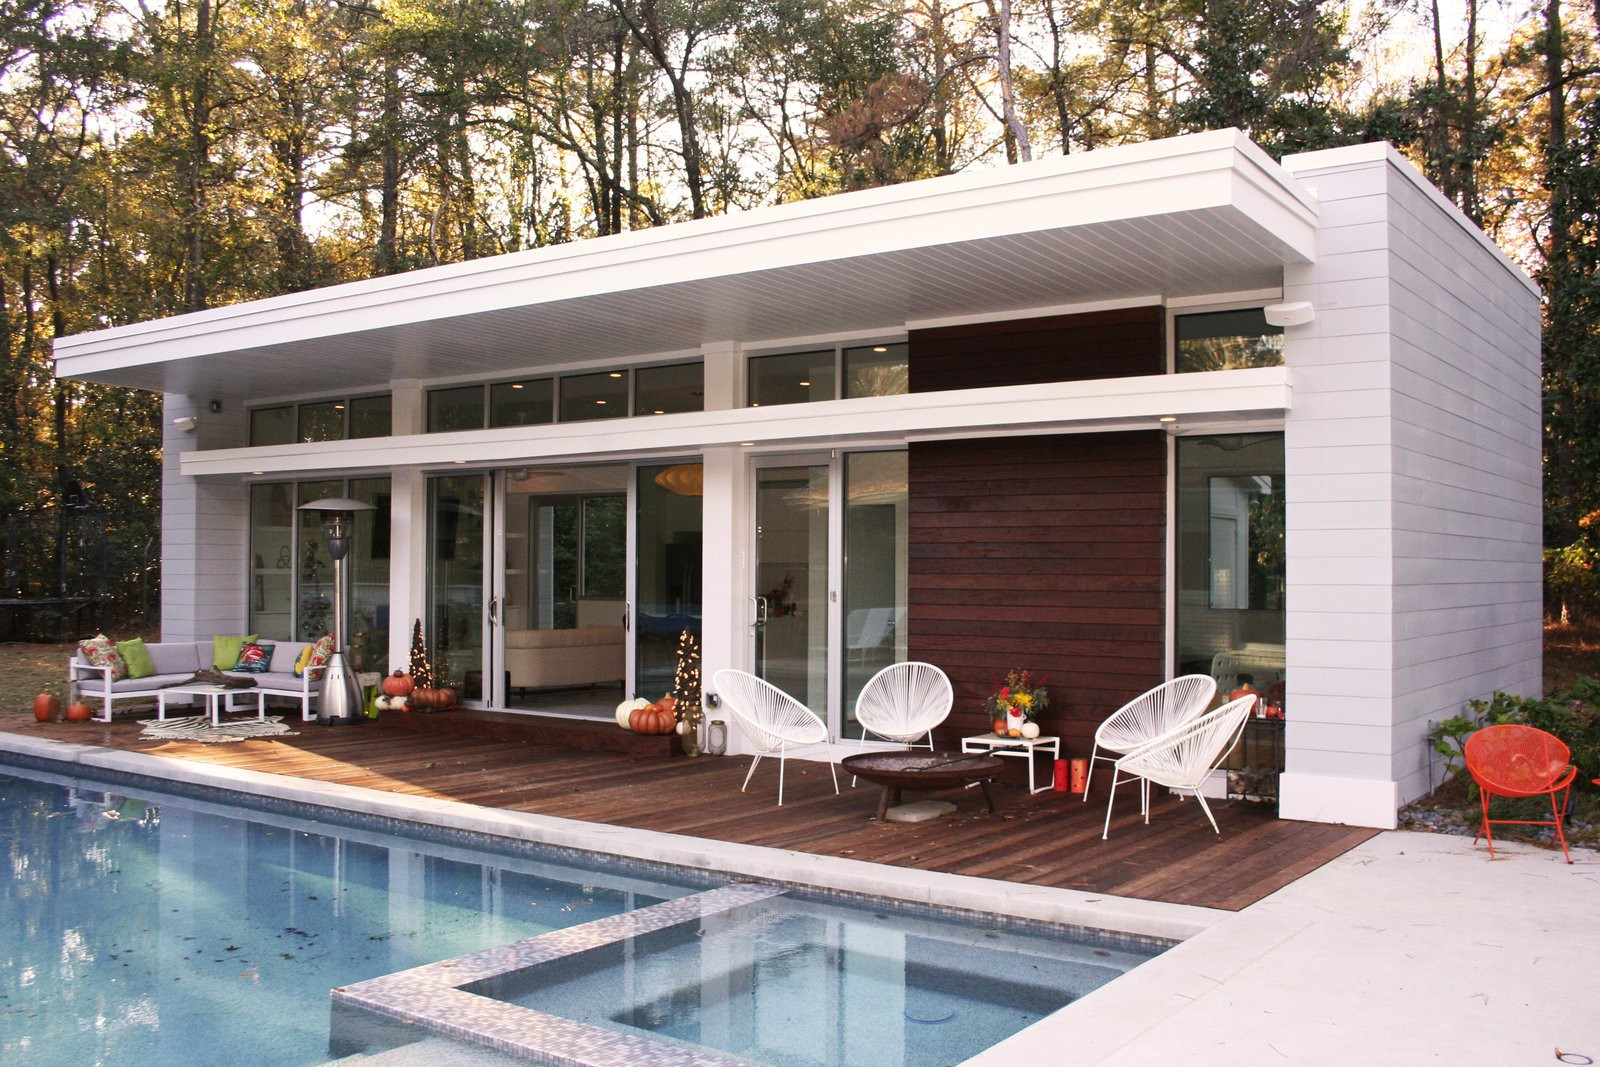 Buckhead modern pool house modern home in atlanta georgia - Modern house with pool ...